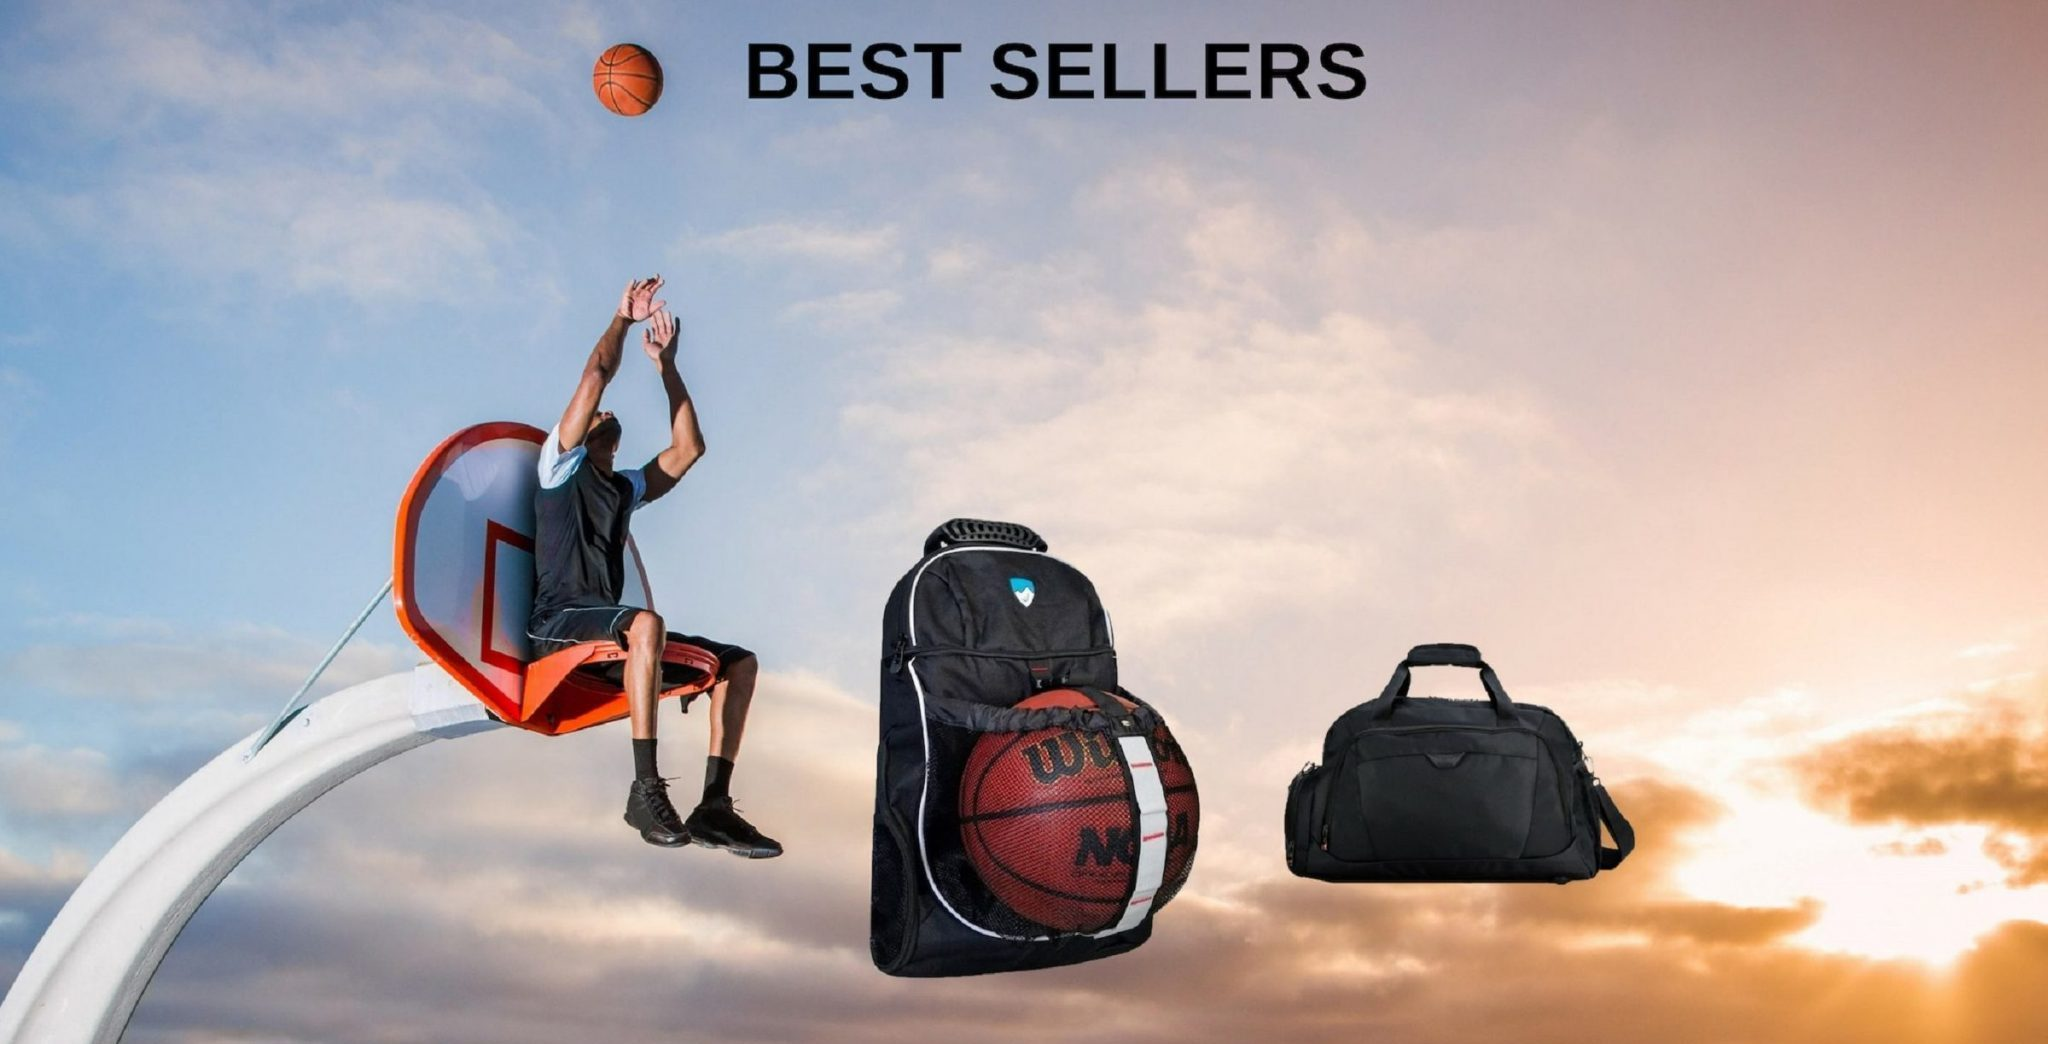 Hard Work Sports Basketball Backpack Duffle Bag Best Sellers